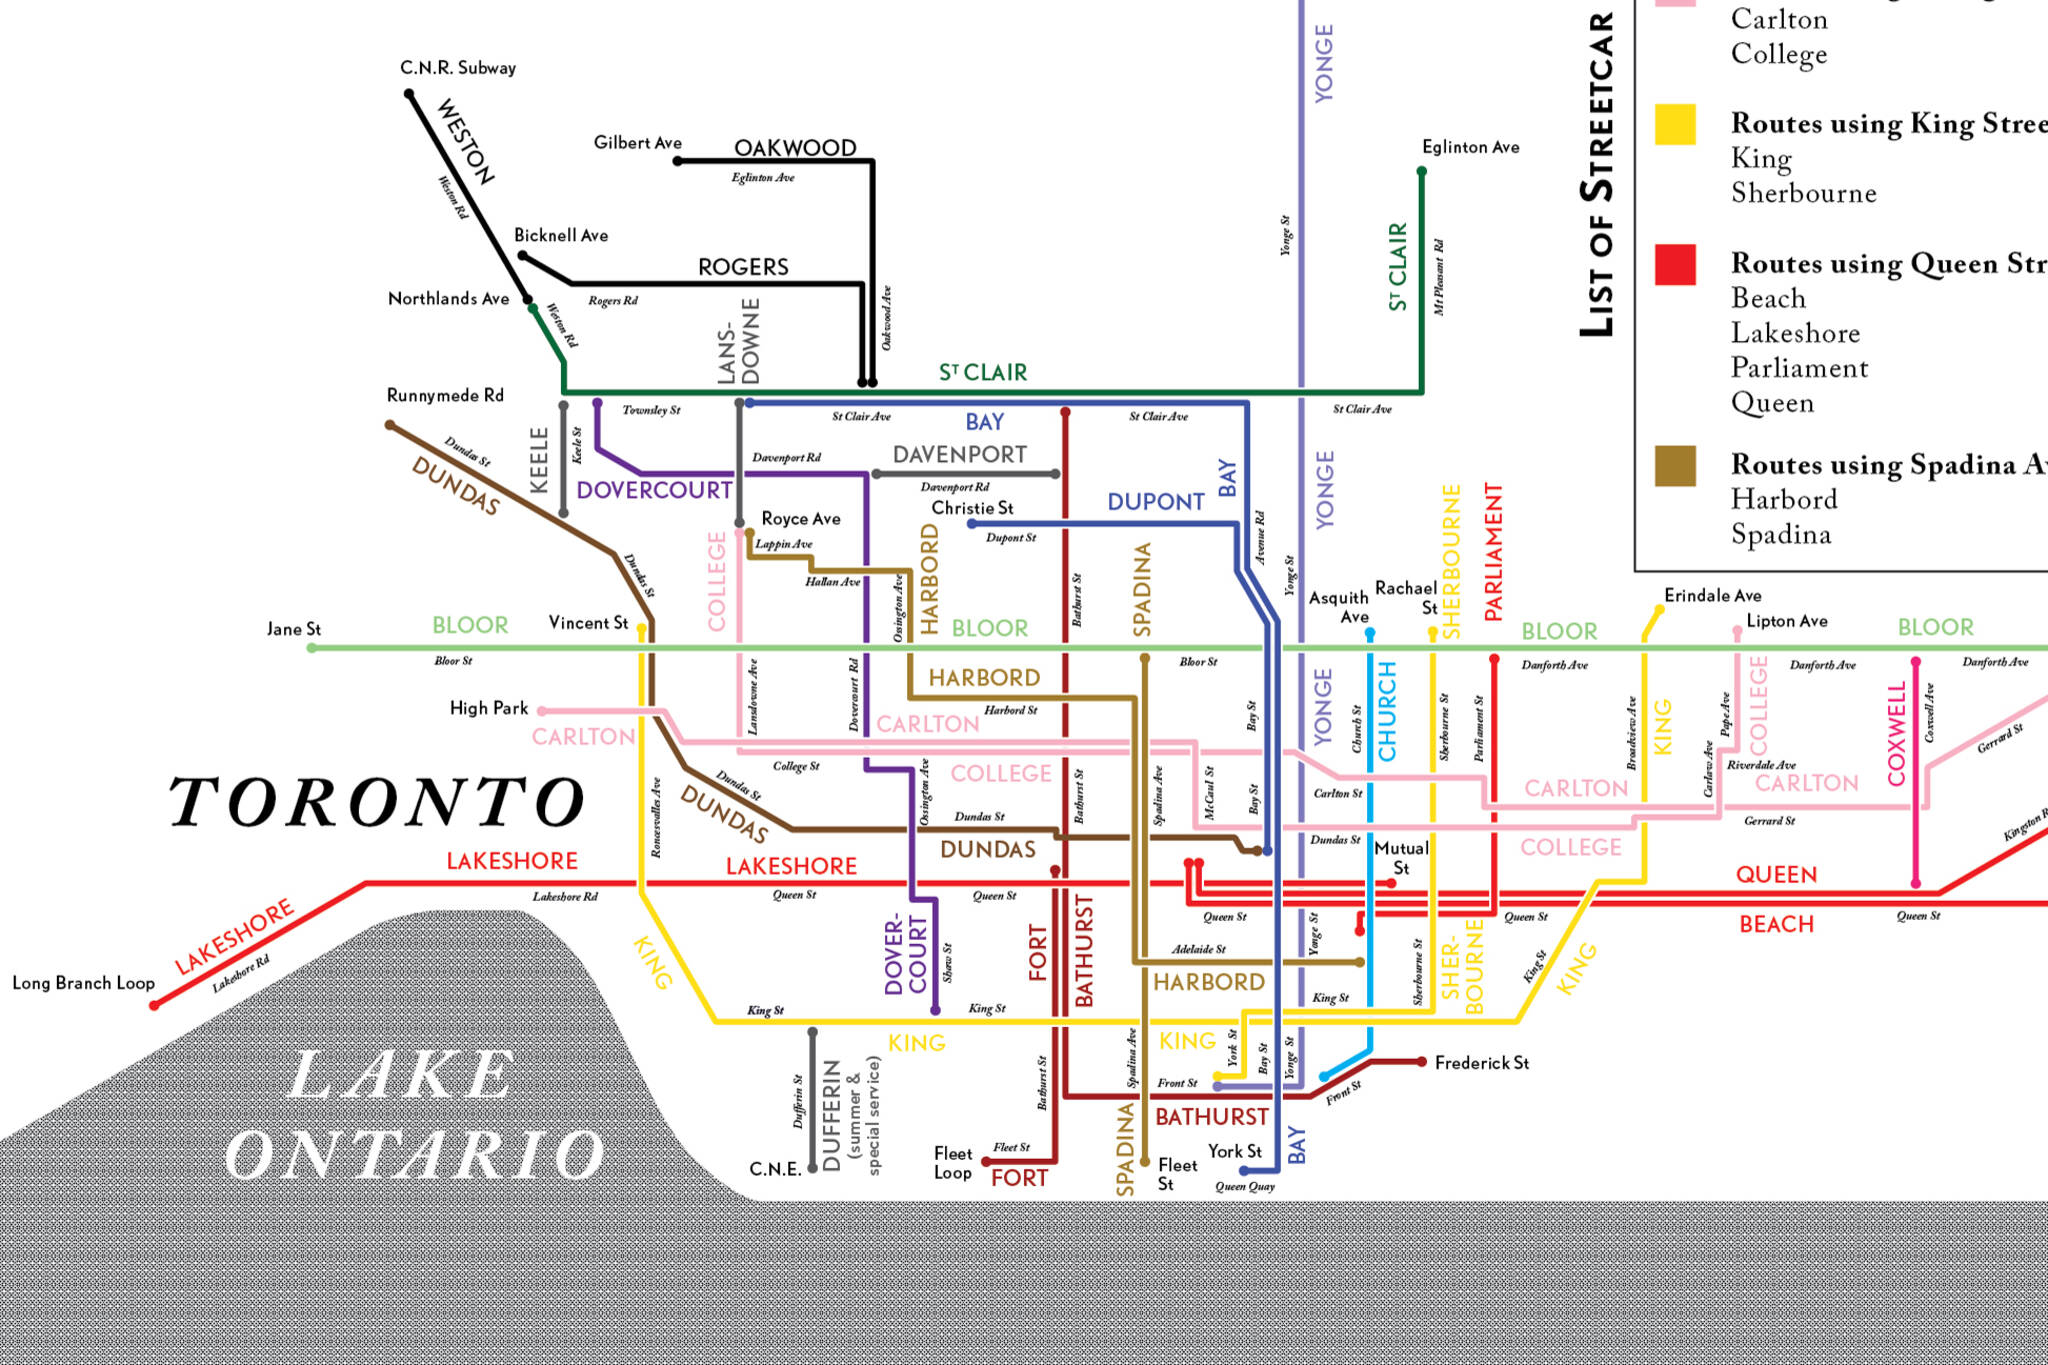 Toronto Streetcar Map Here's what Toronto's streetcar network looked like in 1932